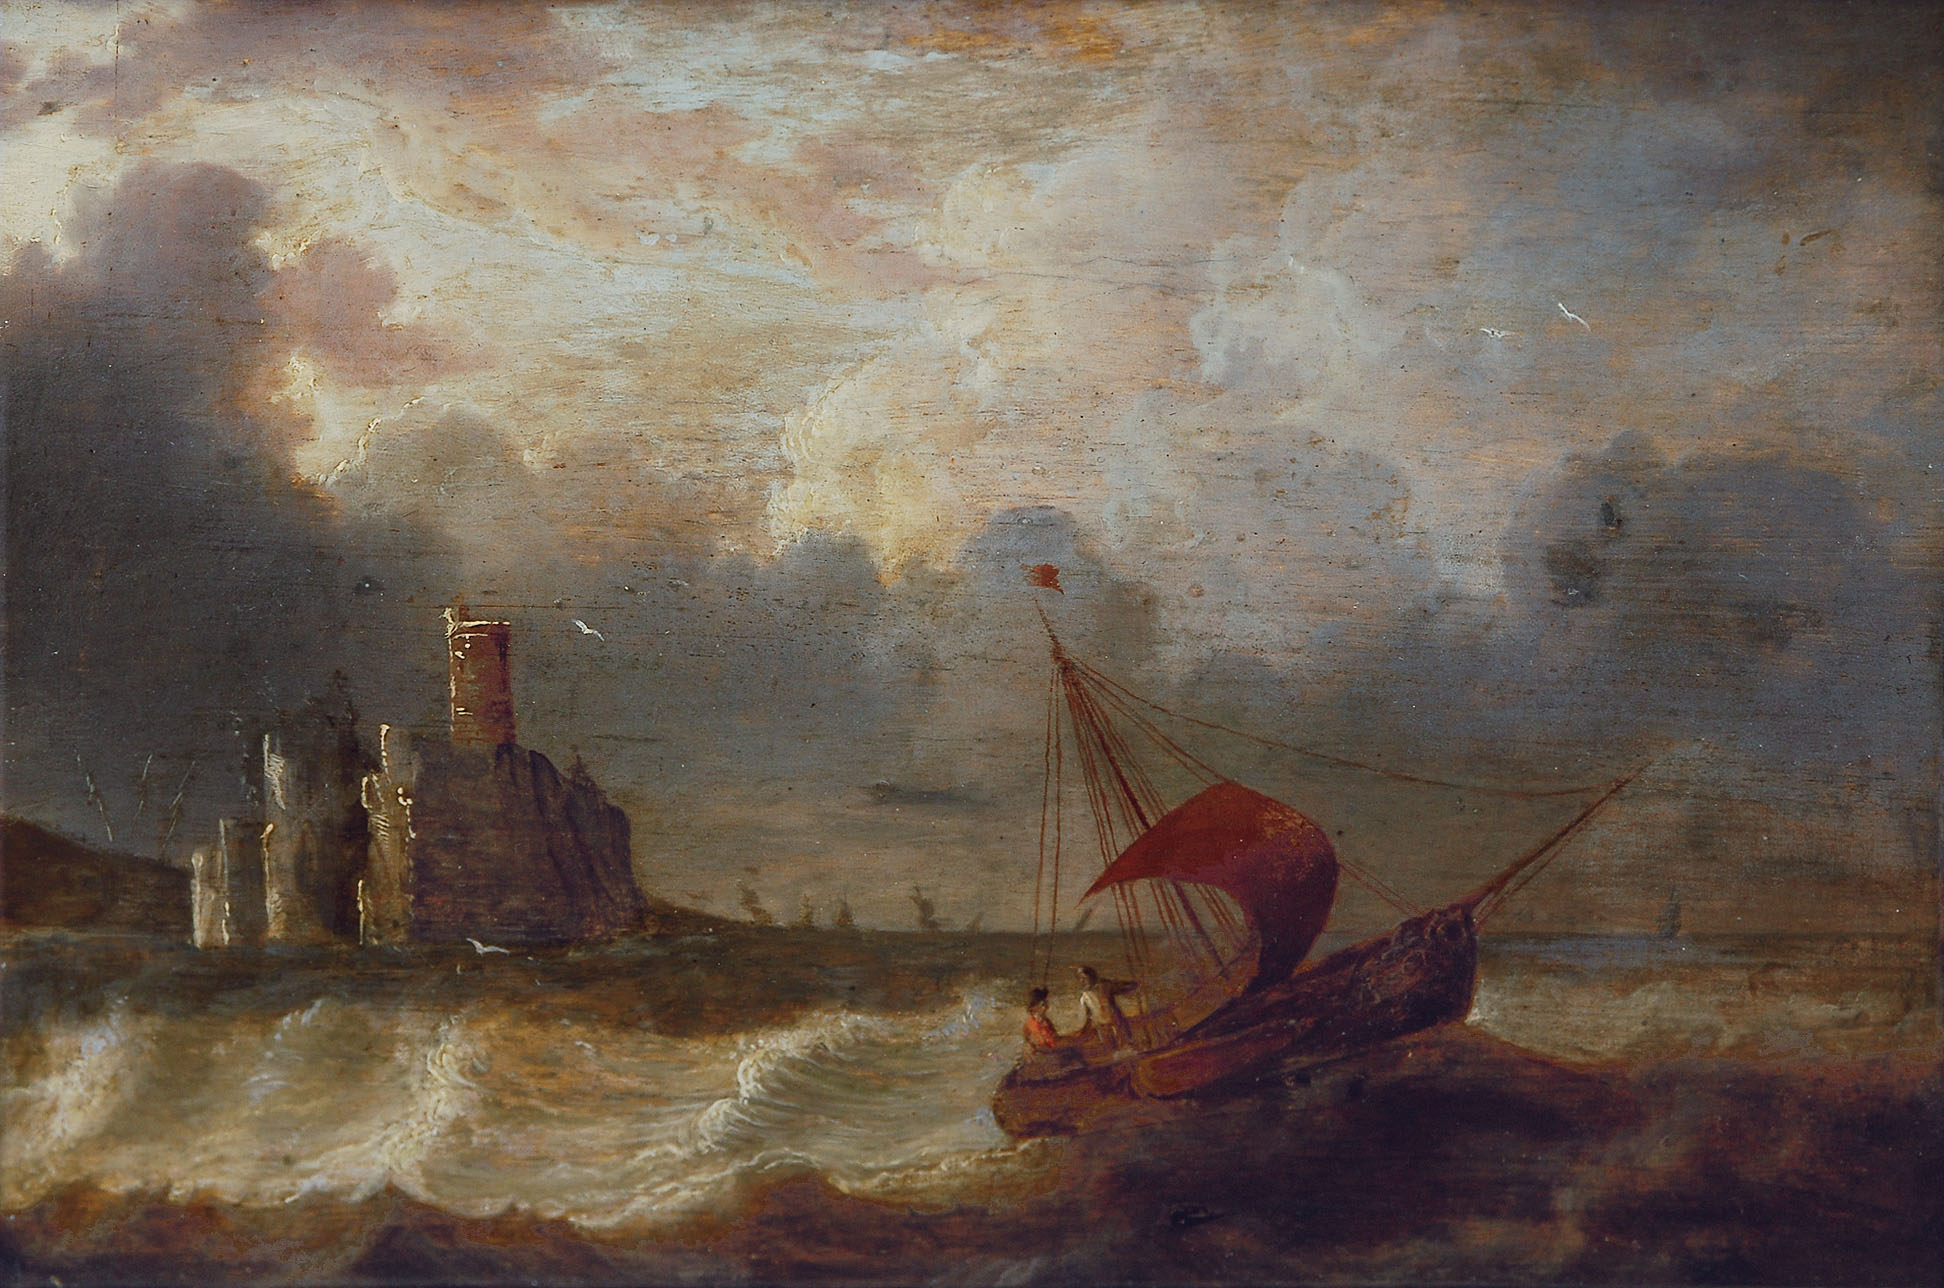 Coastel scene with a sailing boat in a stormy sea